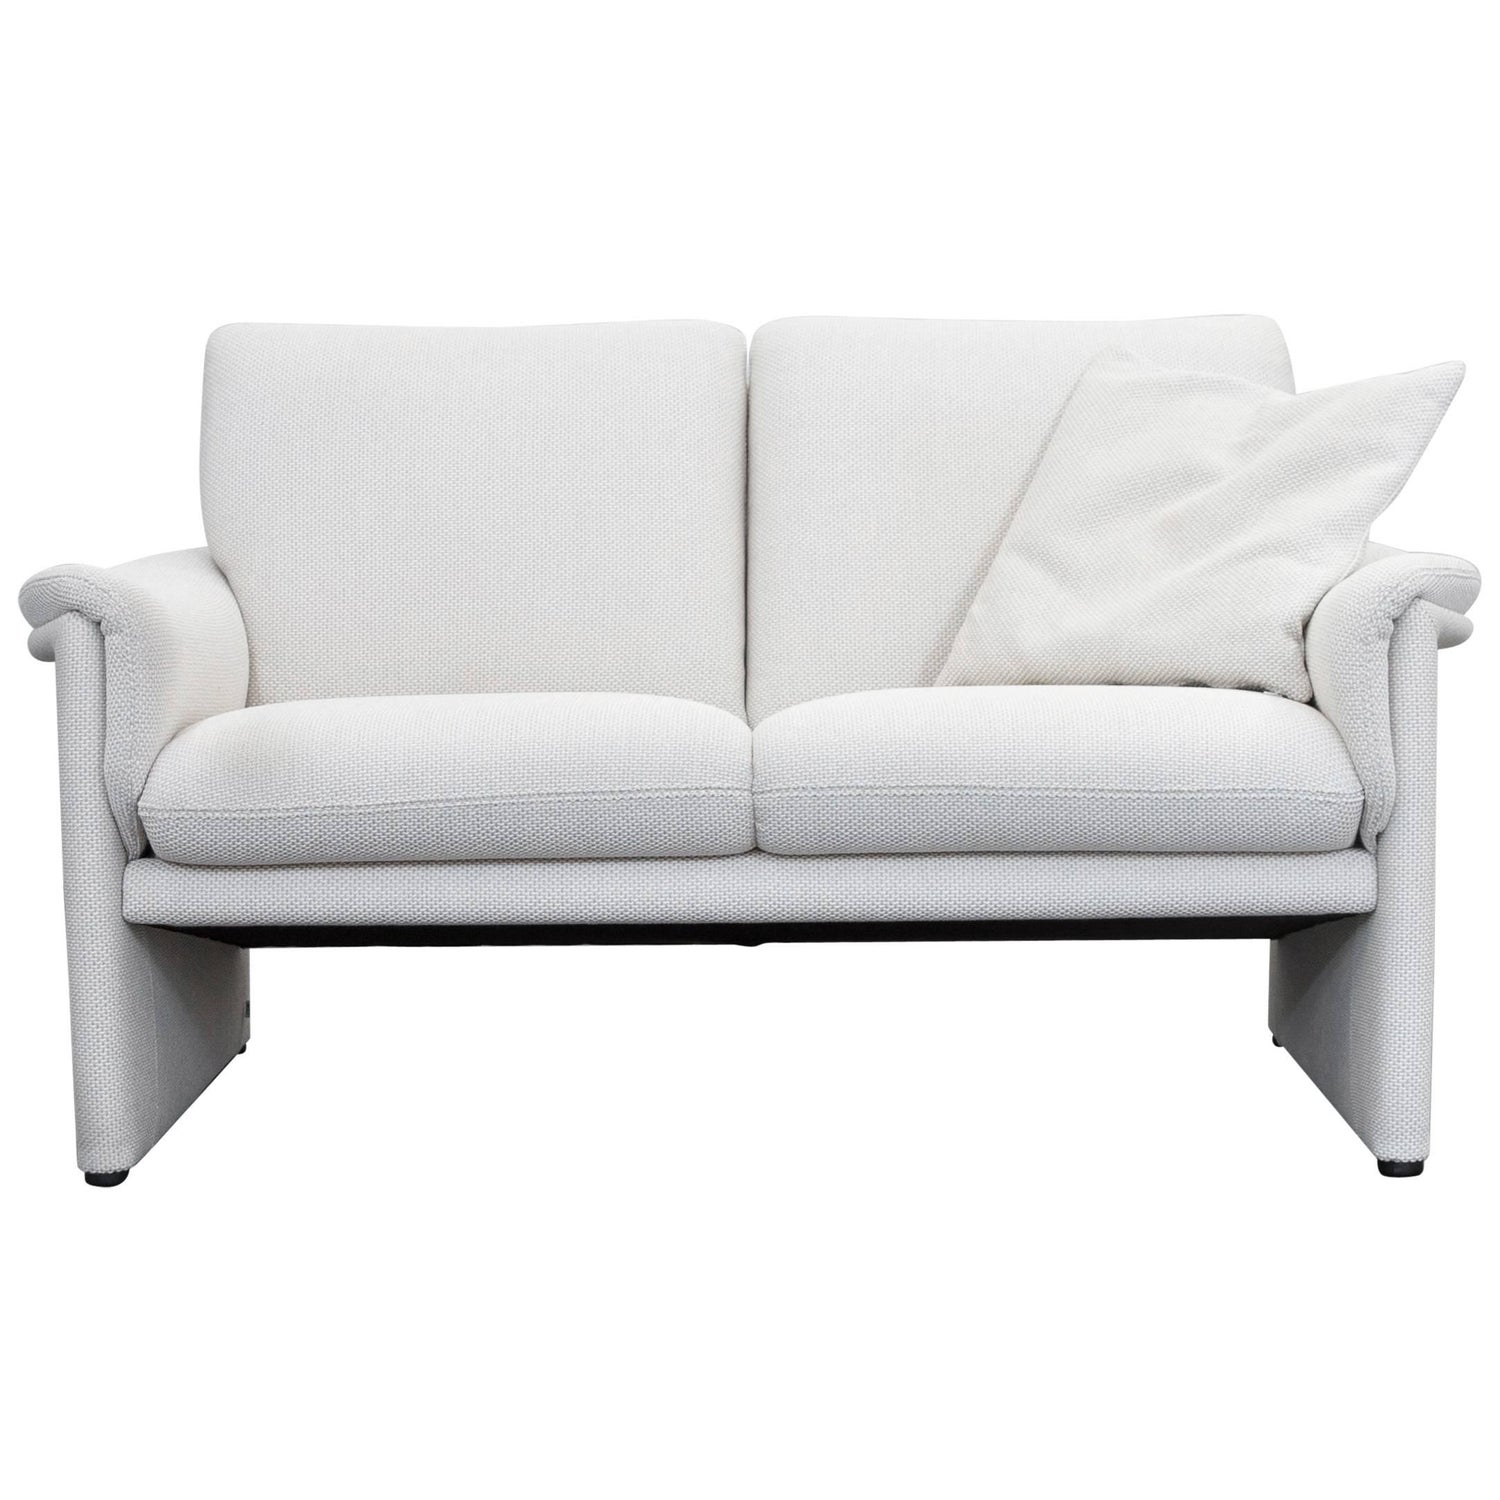 Cor furniture 34 for sale at 1stdibs cor zento designer sofa fabric crme white two seat couch modern parisarafo Image collections